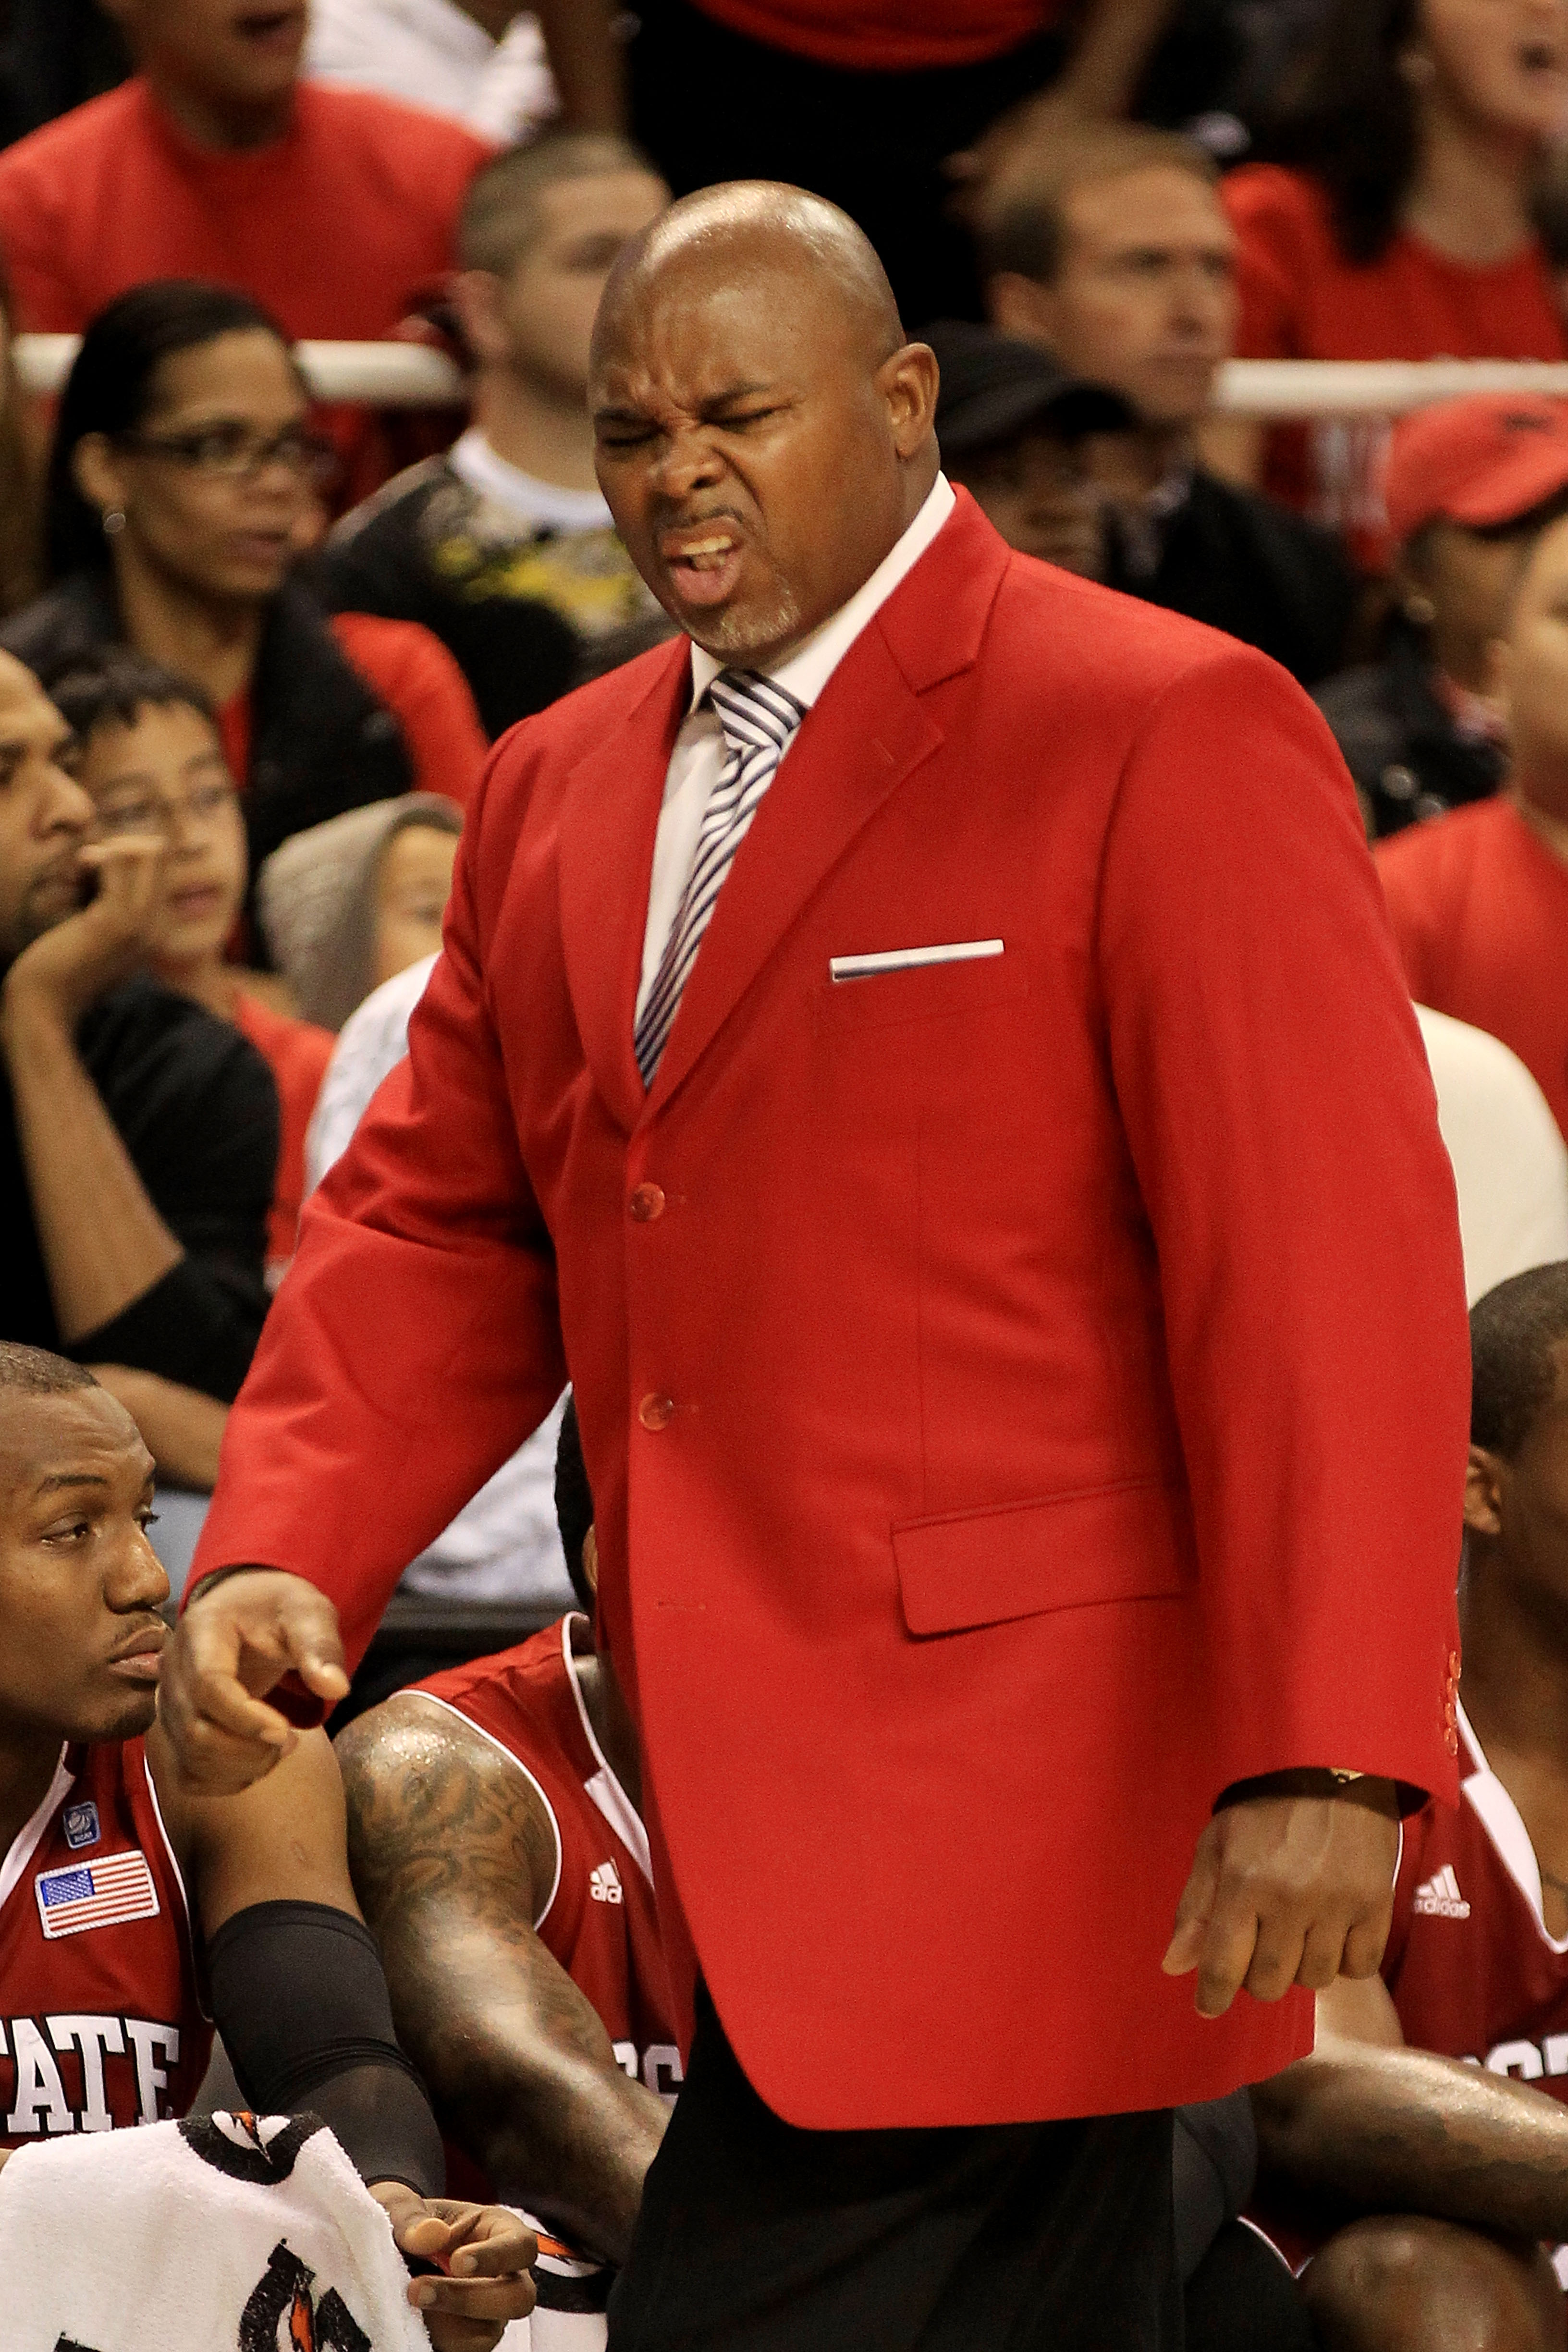 GREENSBORO, NC - MARCH 10:  Head coach Sidney Lowe of the North Carolina State Wolfpack reacts during the first half of the game against the Maryland Terrapins in the first round of the 2011 ACC men's basketball tournament at the Greensboro Coliseum on Ma